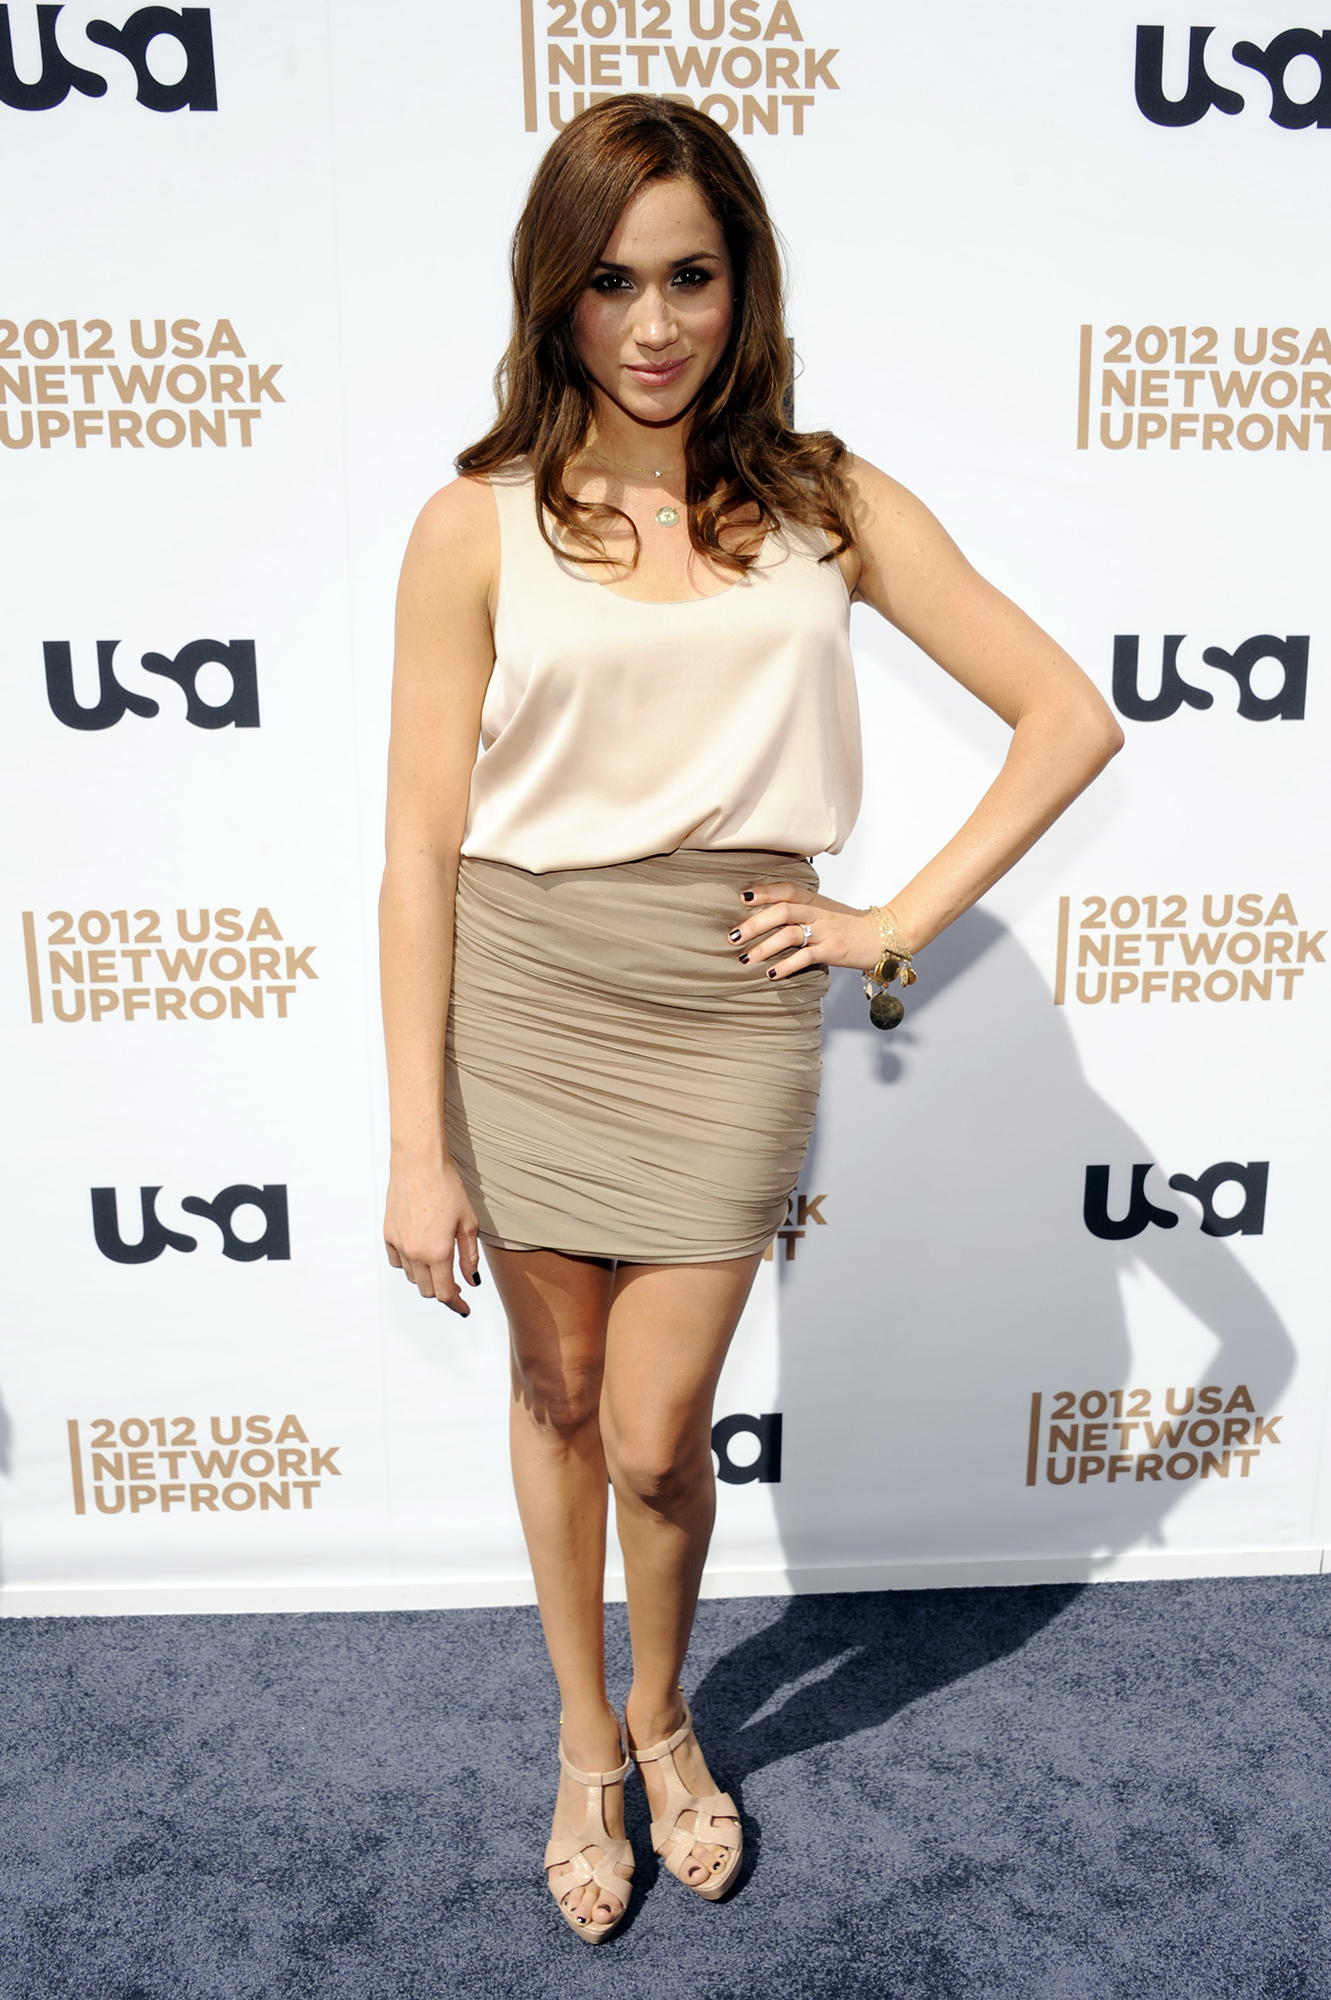 <div class='meta'><div class='origin-logo' data-origin='AP'></div><span class='caption-text' data-credit='AP'>Meghan Markle attends the USA network upfront presentation at Alice Tully Hall, Thursday, May 17, 2012 in New York. (AP Photo/Evan Agostini)</span></div>